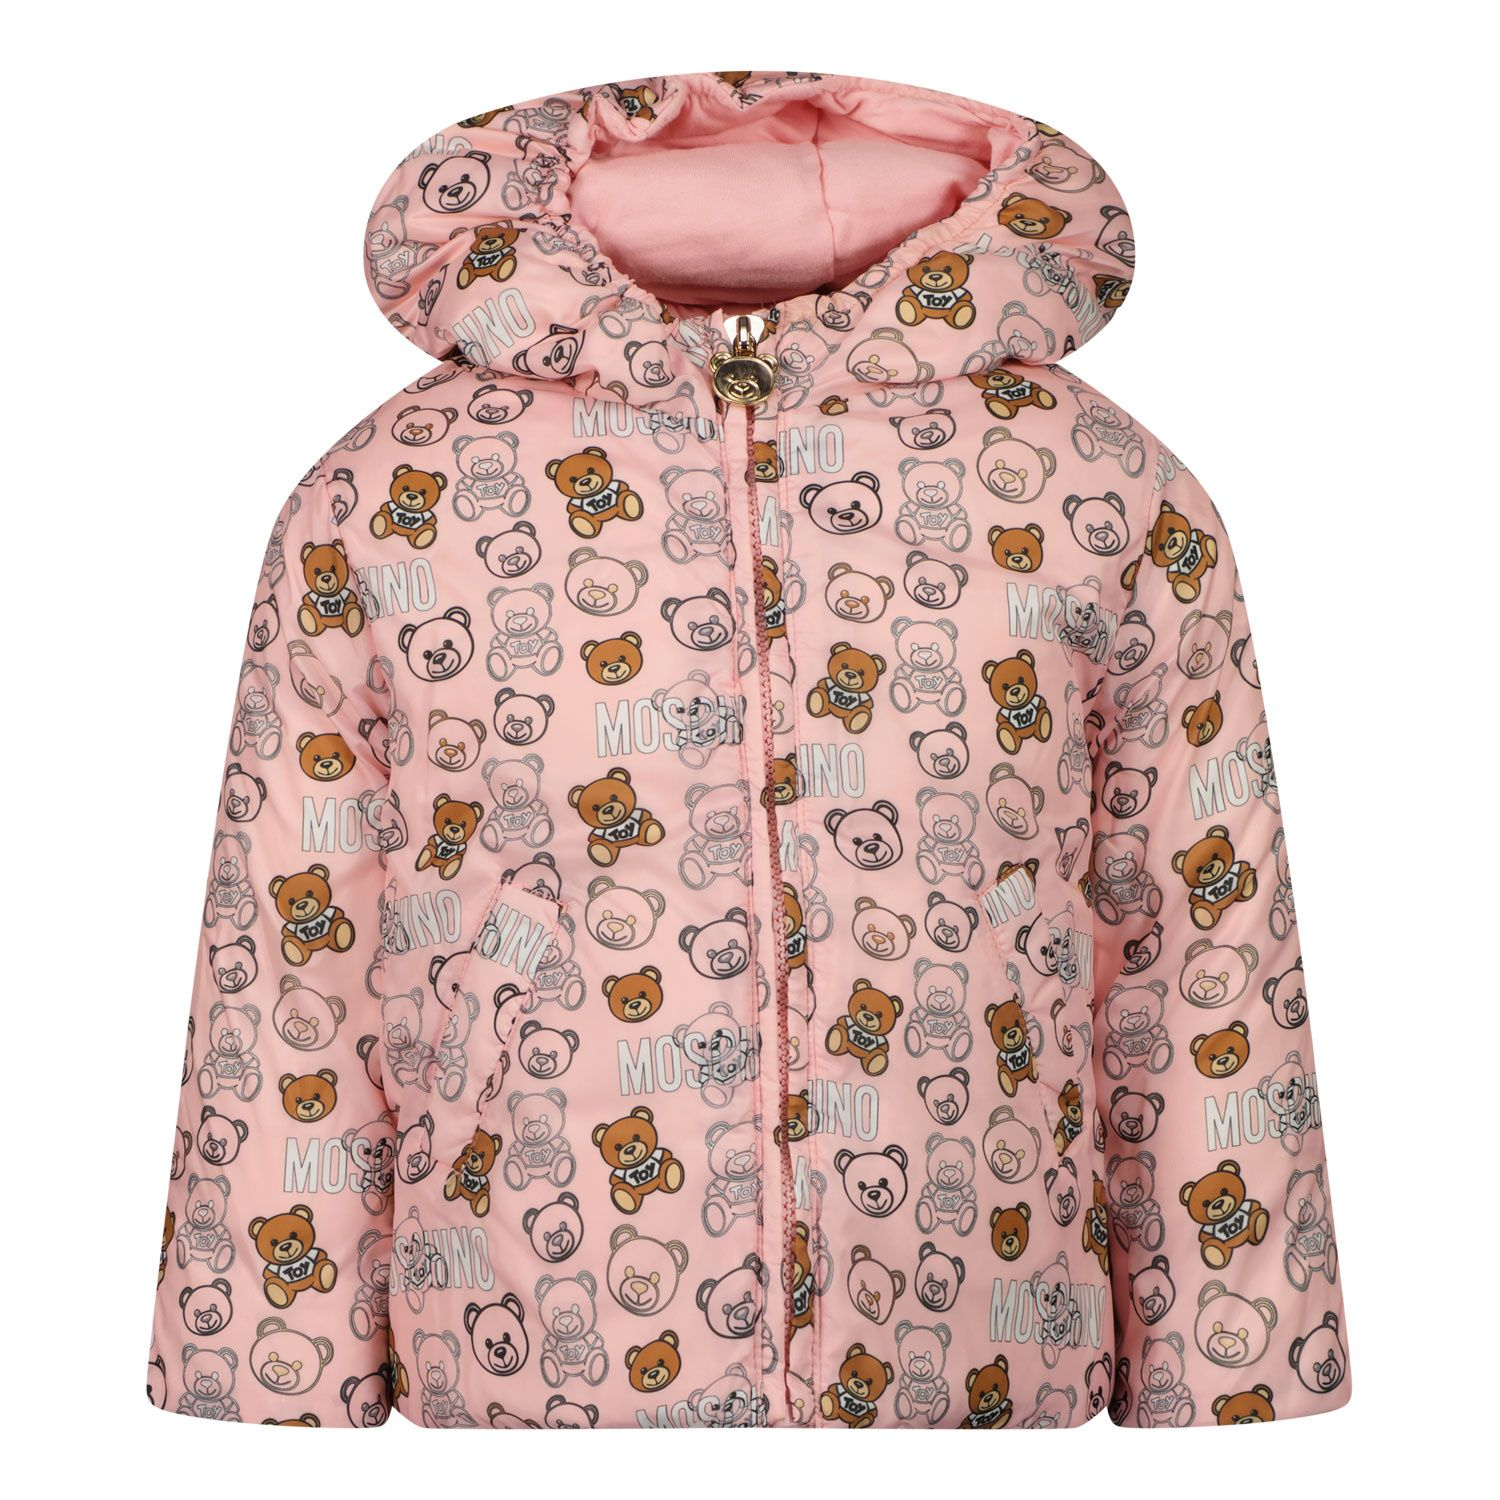 Picture of Moschino MUS021 baby coat light pink